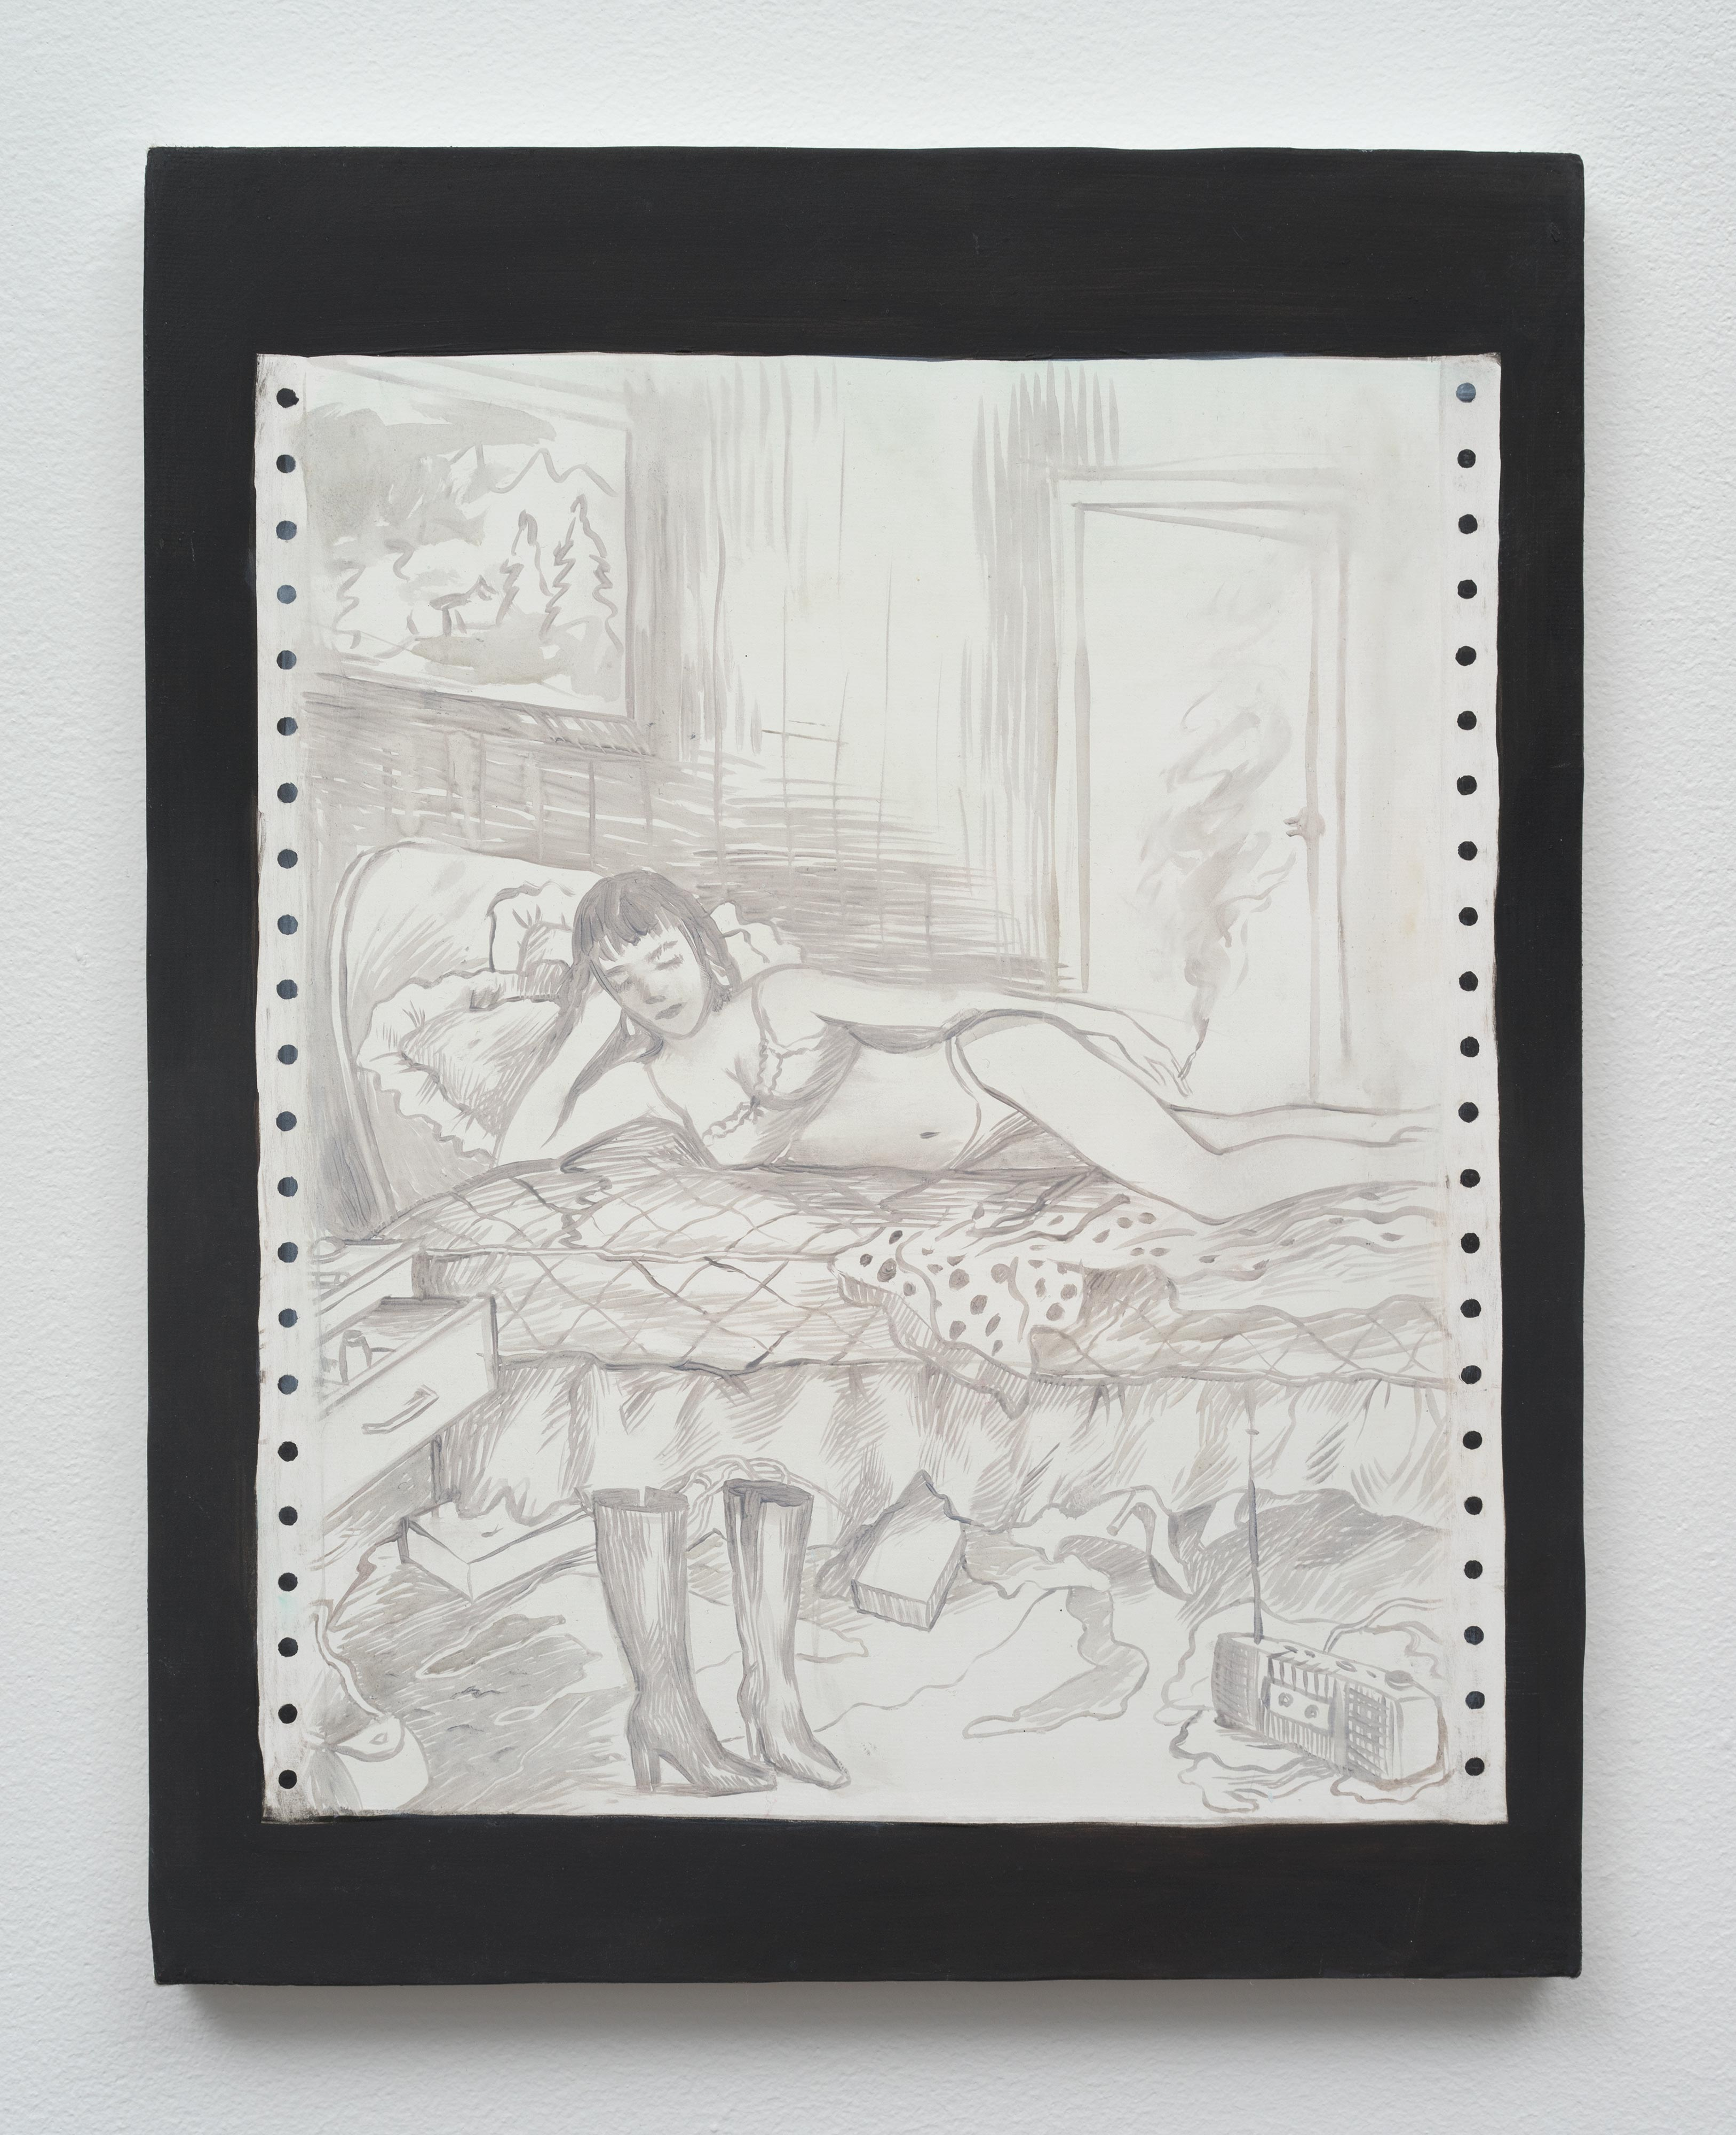 Brandi Twilley<br>Smoking in Bed<br>2014<br>oil on canvas<br>14 x 11 in (35.56 x 27.94 cm)